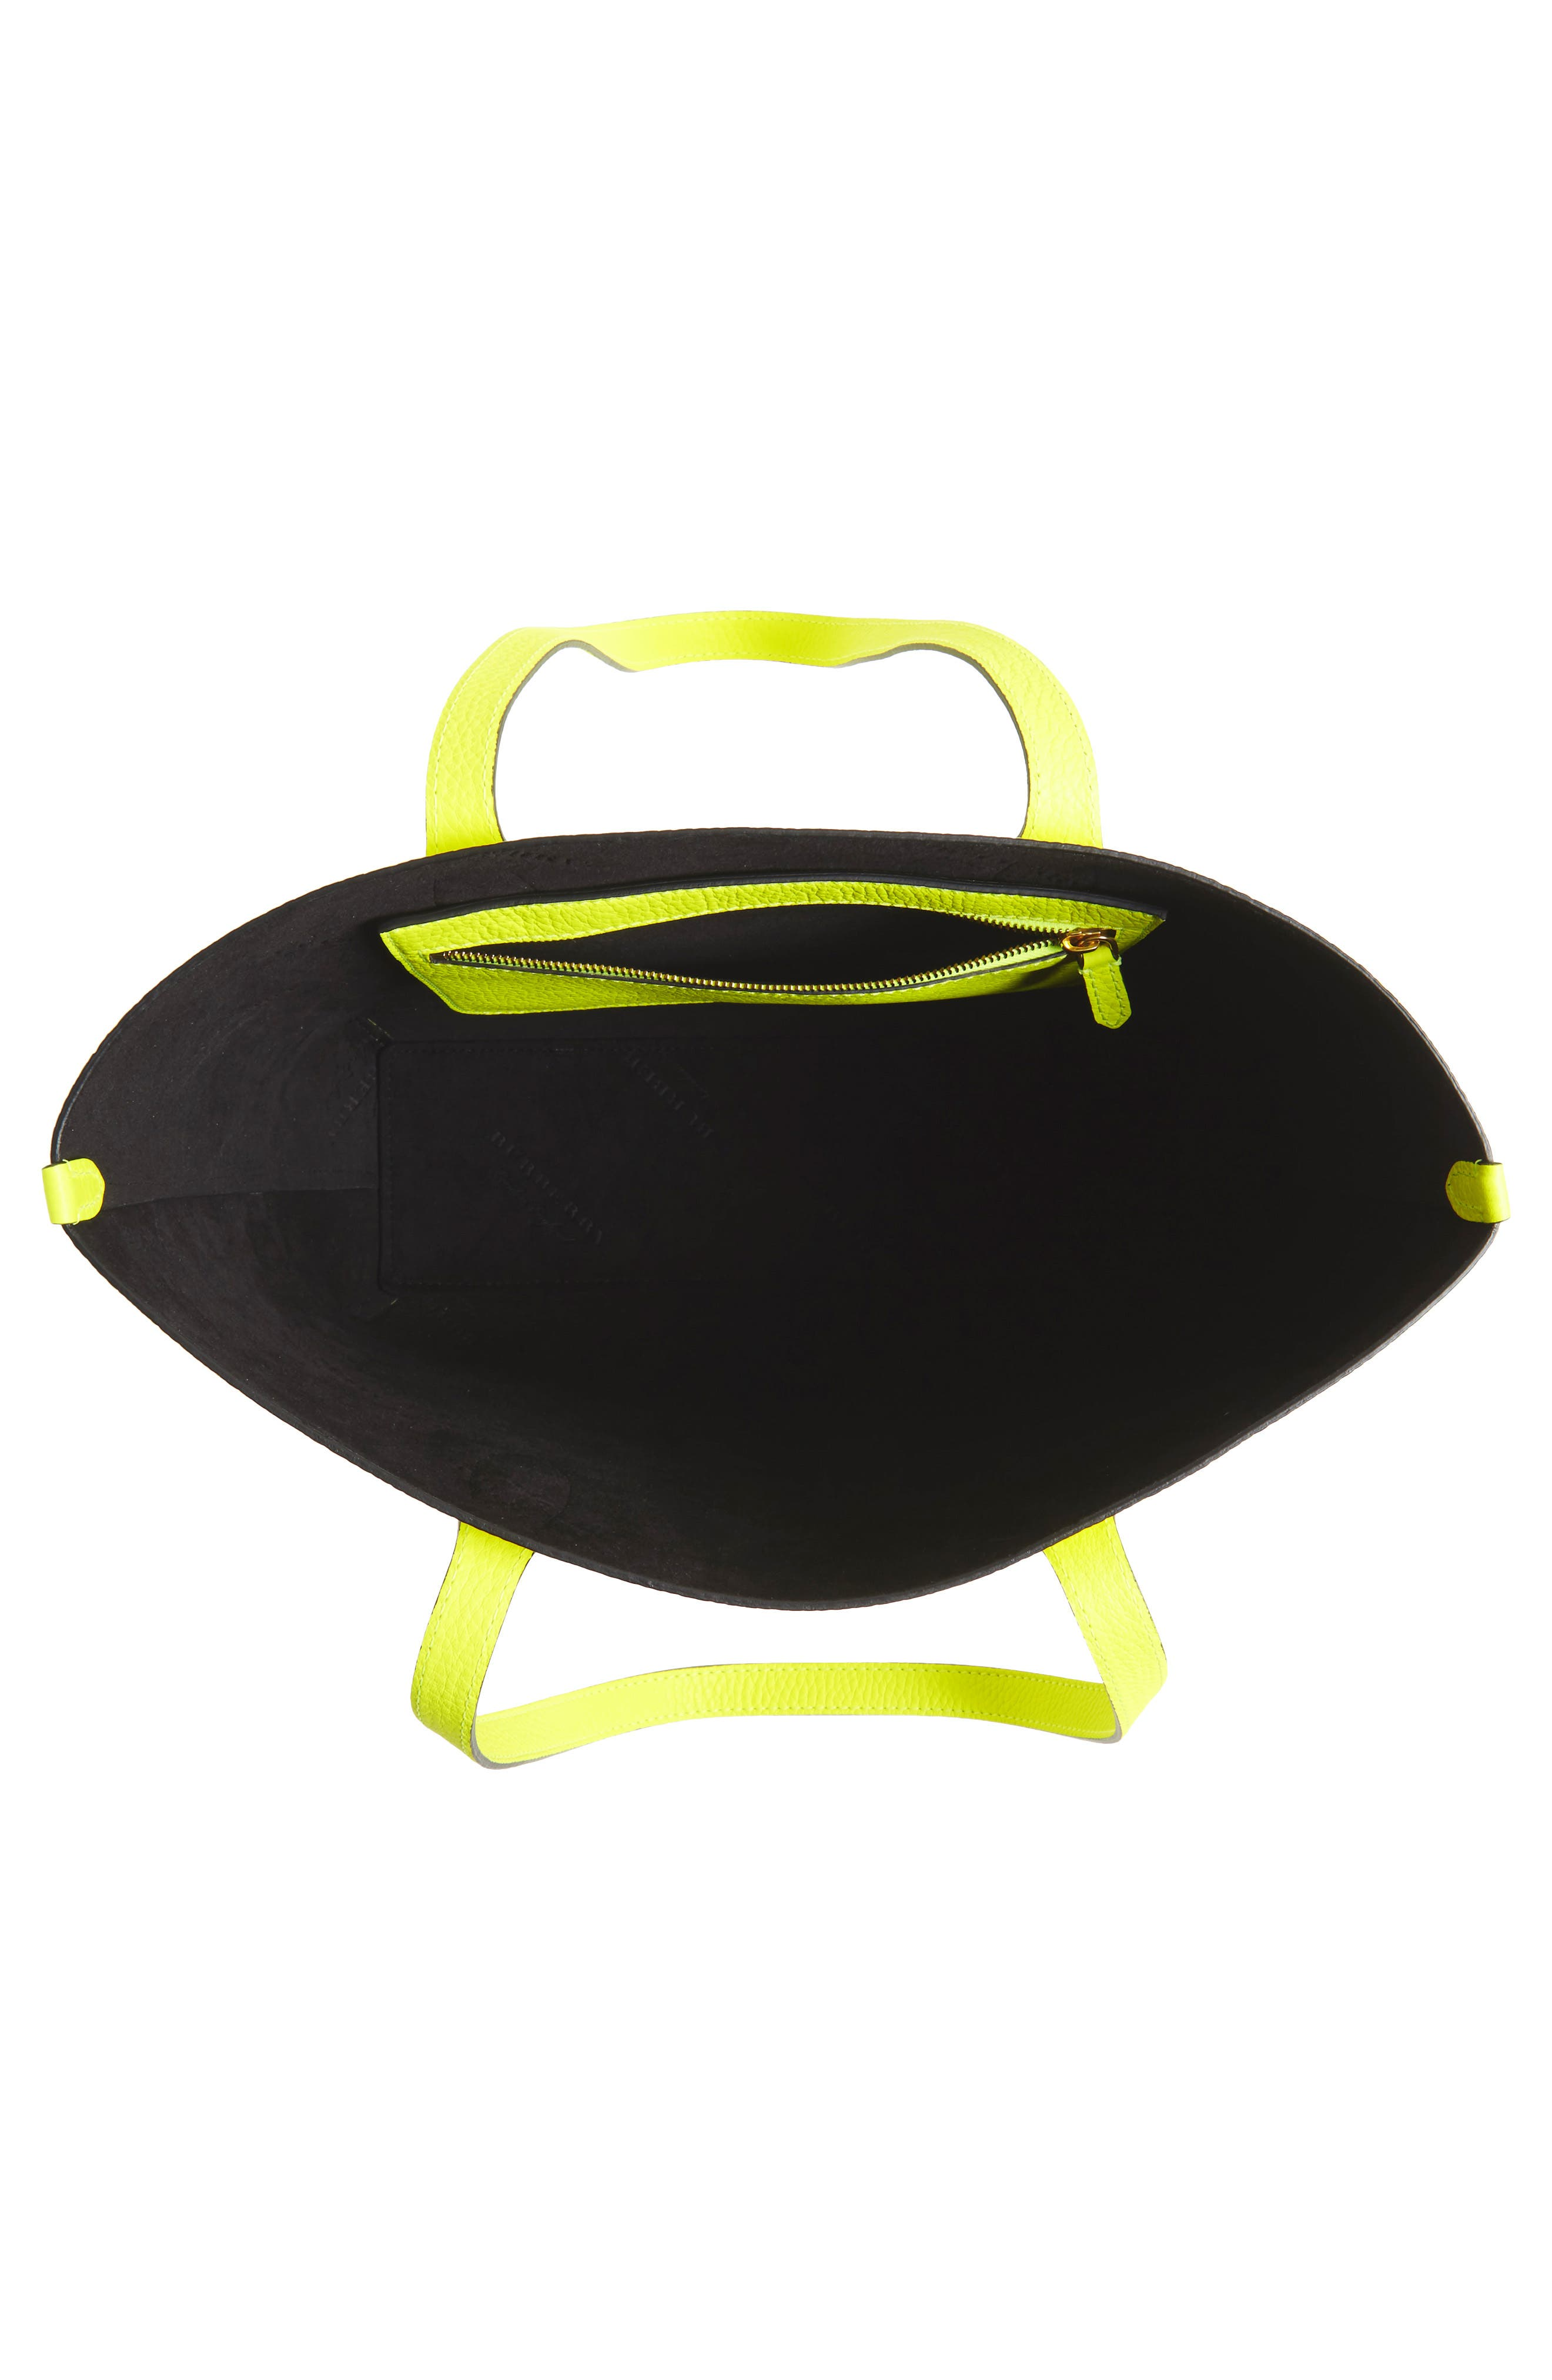 Large Remington Logo Leather Tote,                             Alternate thumbnail 4, color,                             Neon Yellow